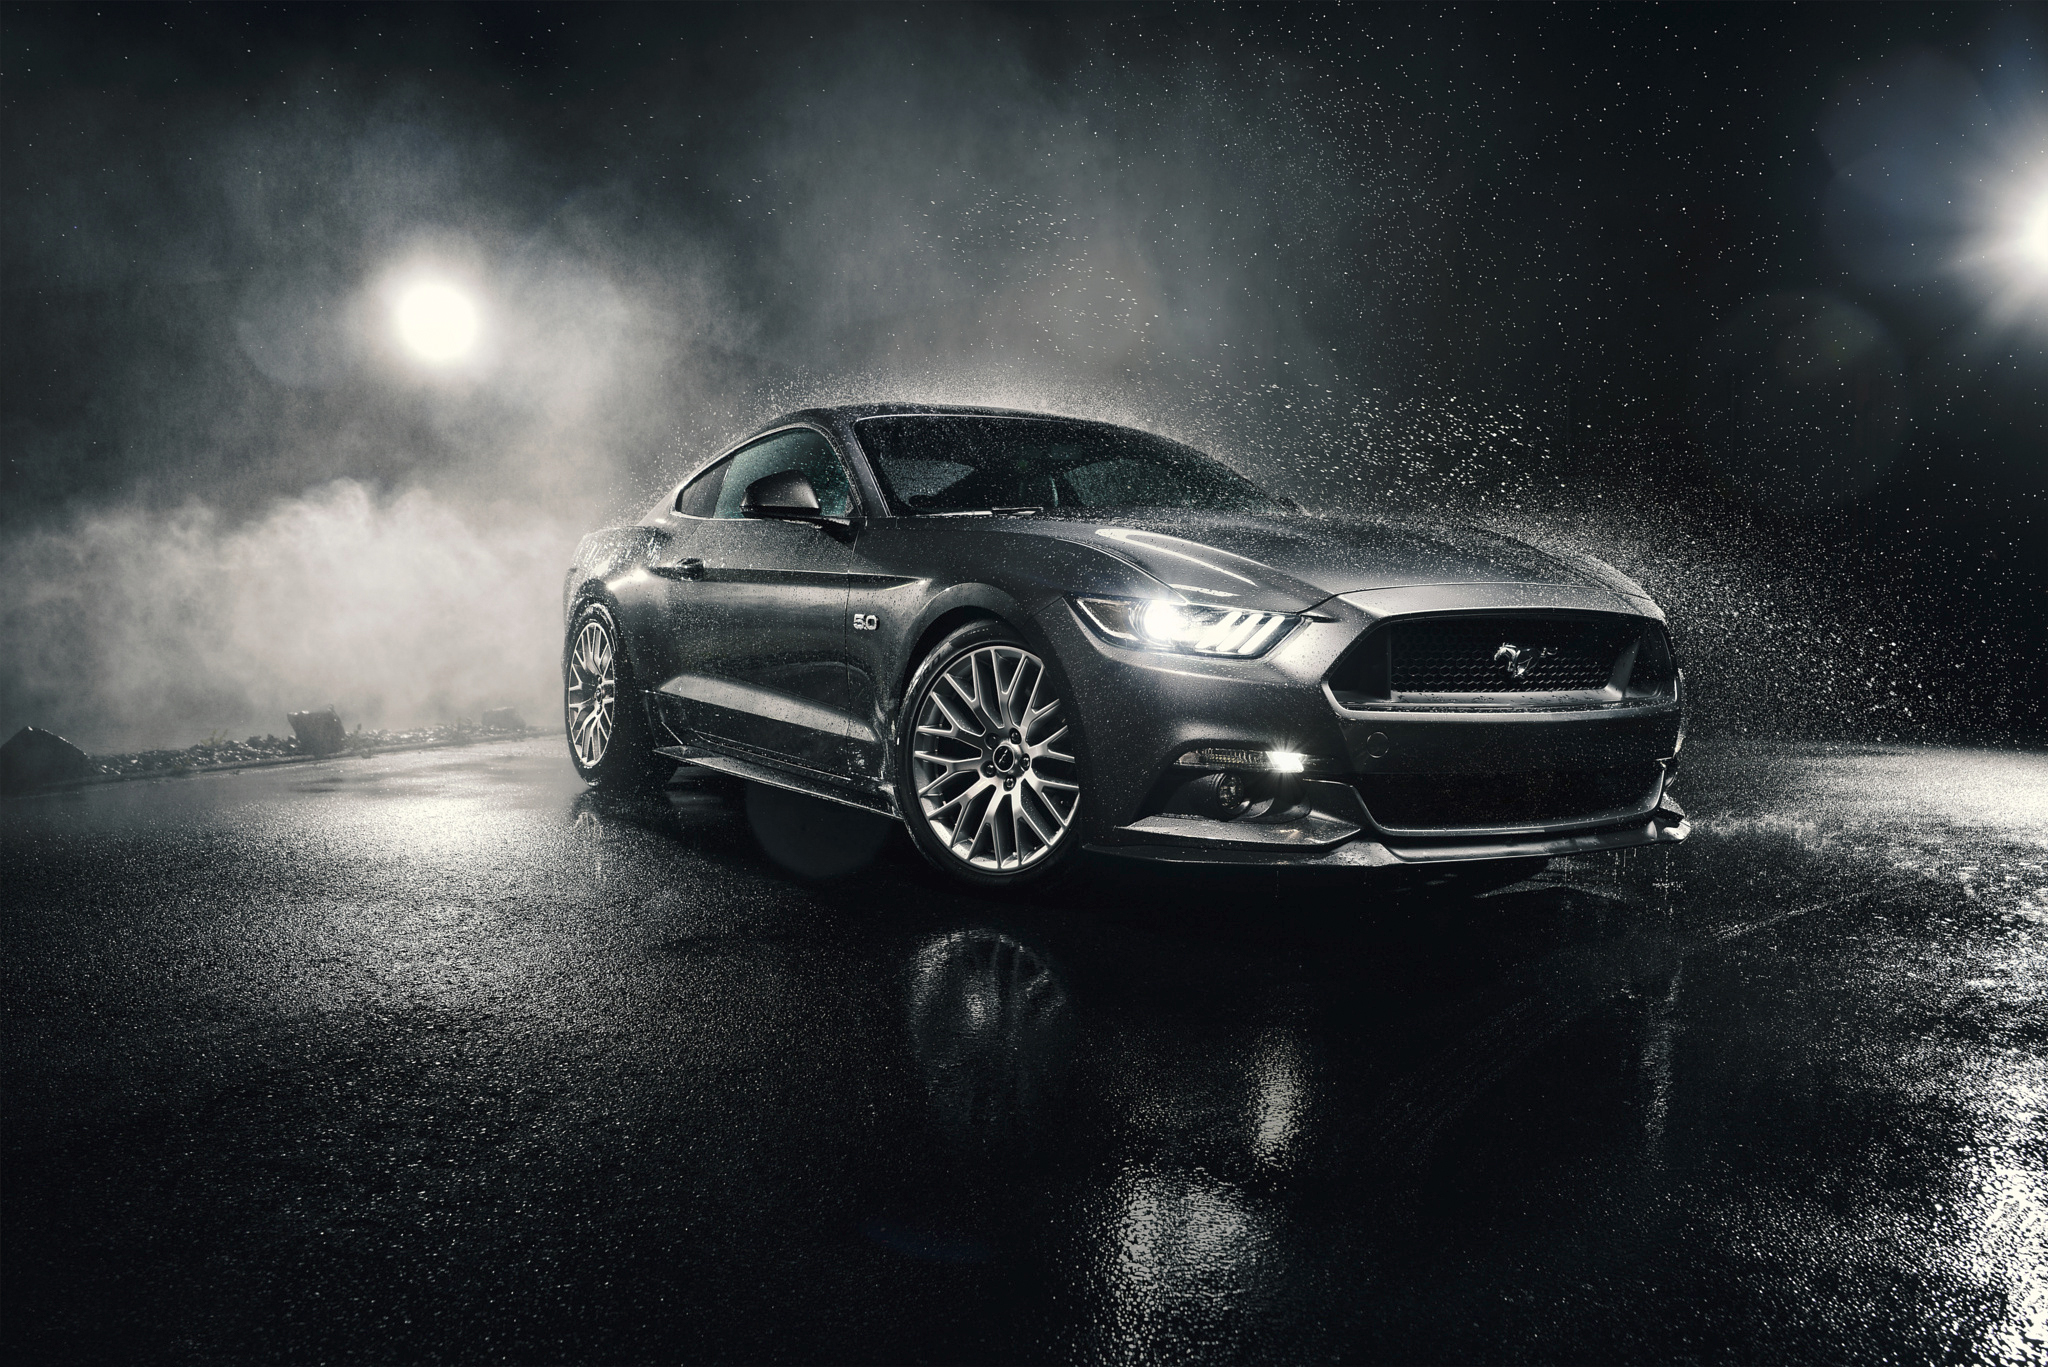 Ford Mustang GT HD Wallpaper | Background Image | 2048x1367 | ID:710383 - Wallpaper Abyss